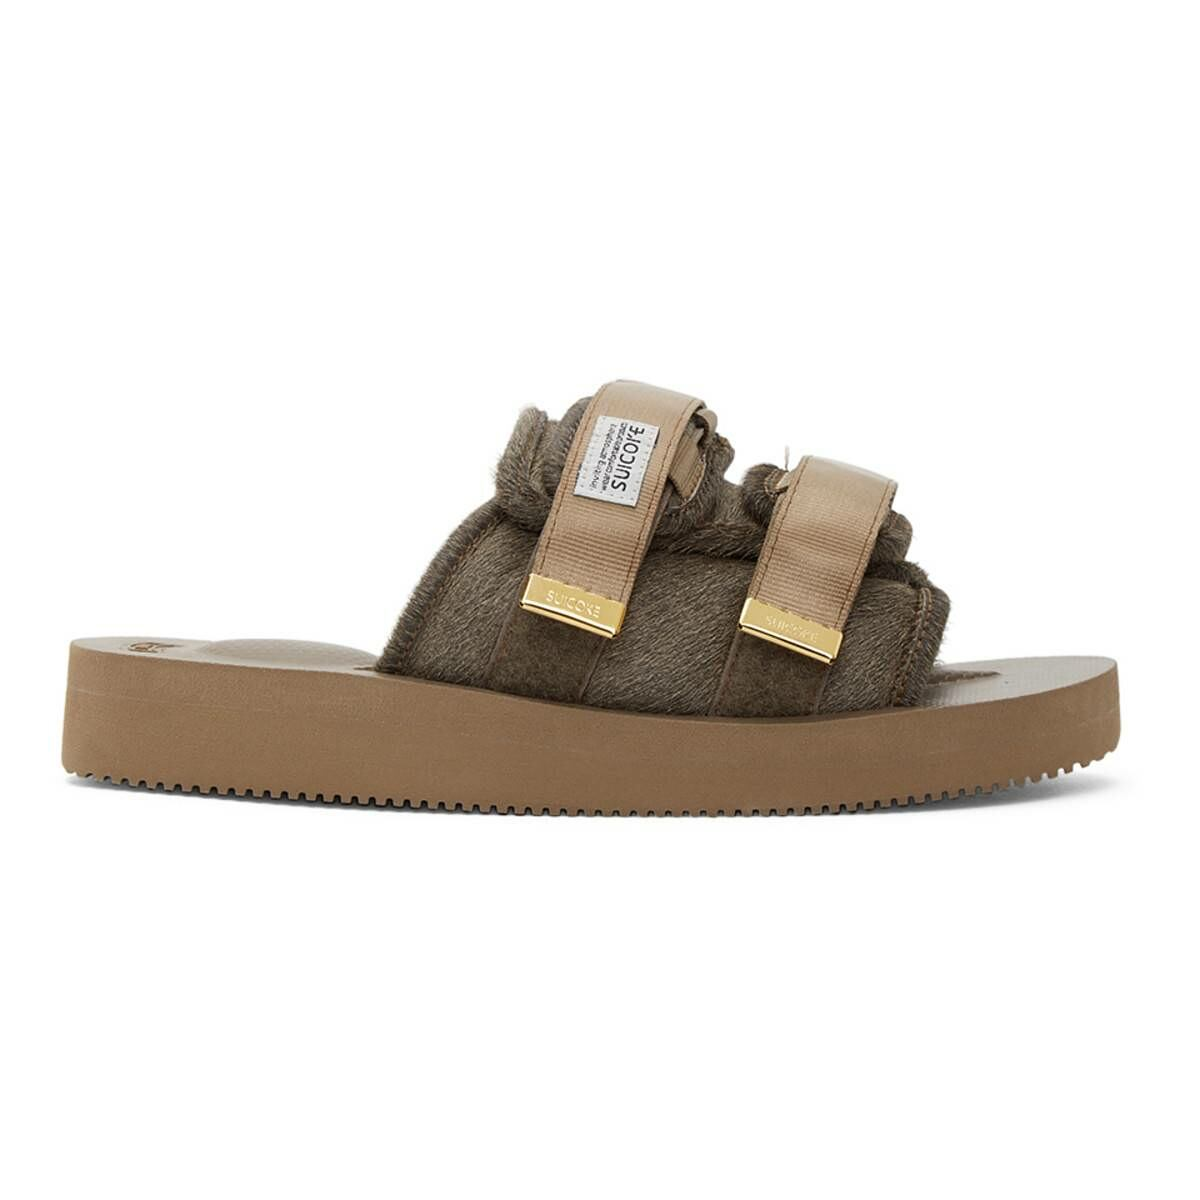 Suicoke Brown MOTO-VHL Sandals Ssense USA MEN Men SHOES Mens SANDALS